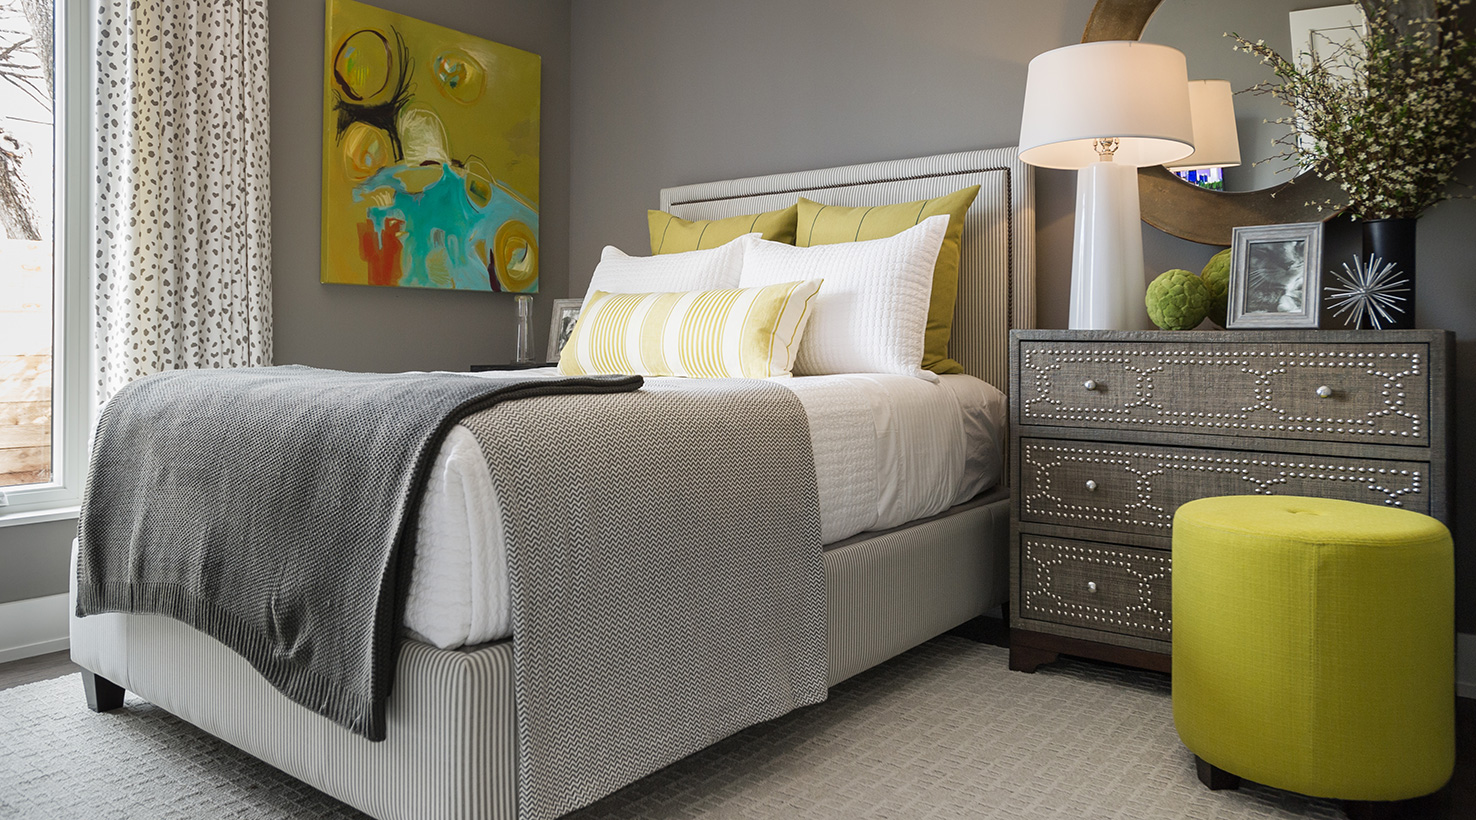 The hgtv smart home 2015 sponsored by sherwin williams - Guest bed options for small spaces paint ...